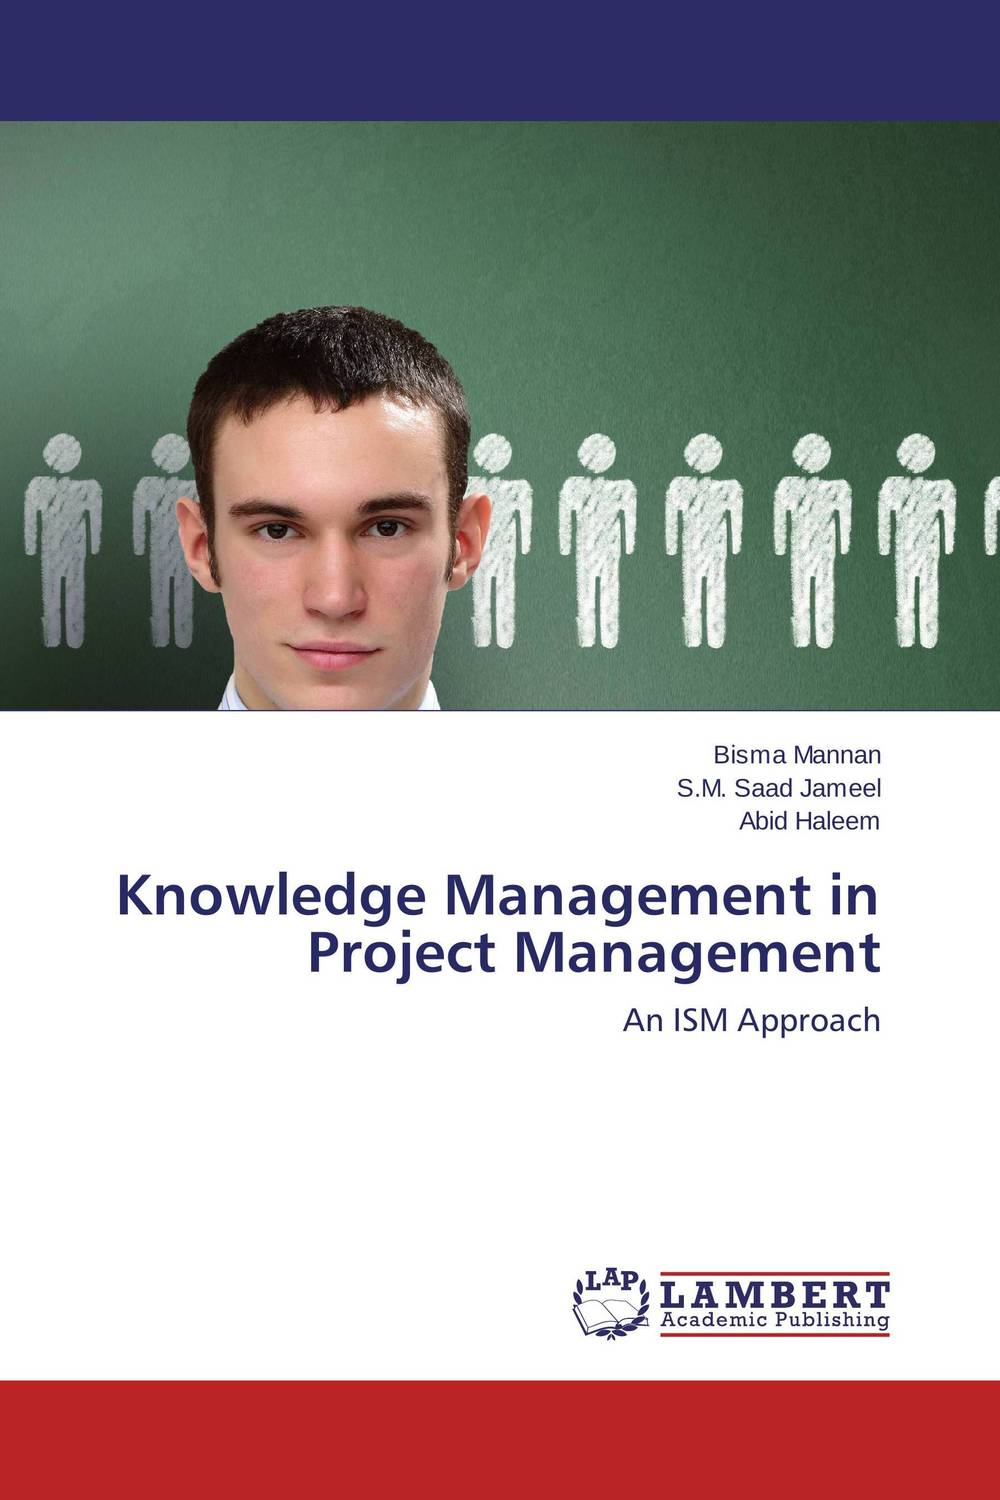 Knowledge Management in Project Management robert wysocki k executive s guide to project management organizational processes and practices for supporting complex projects